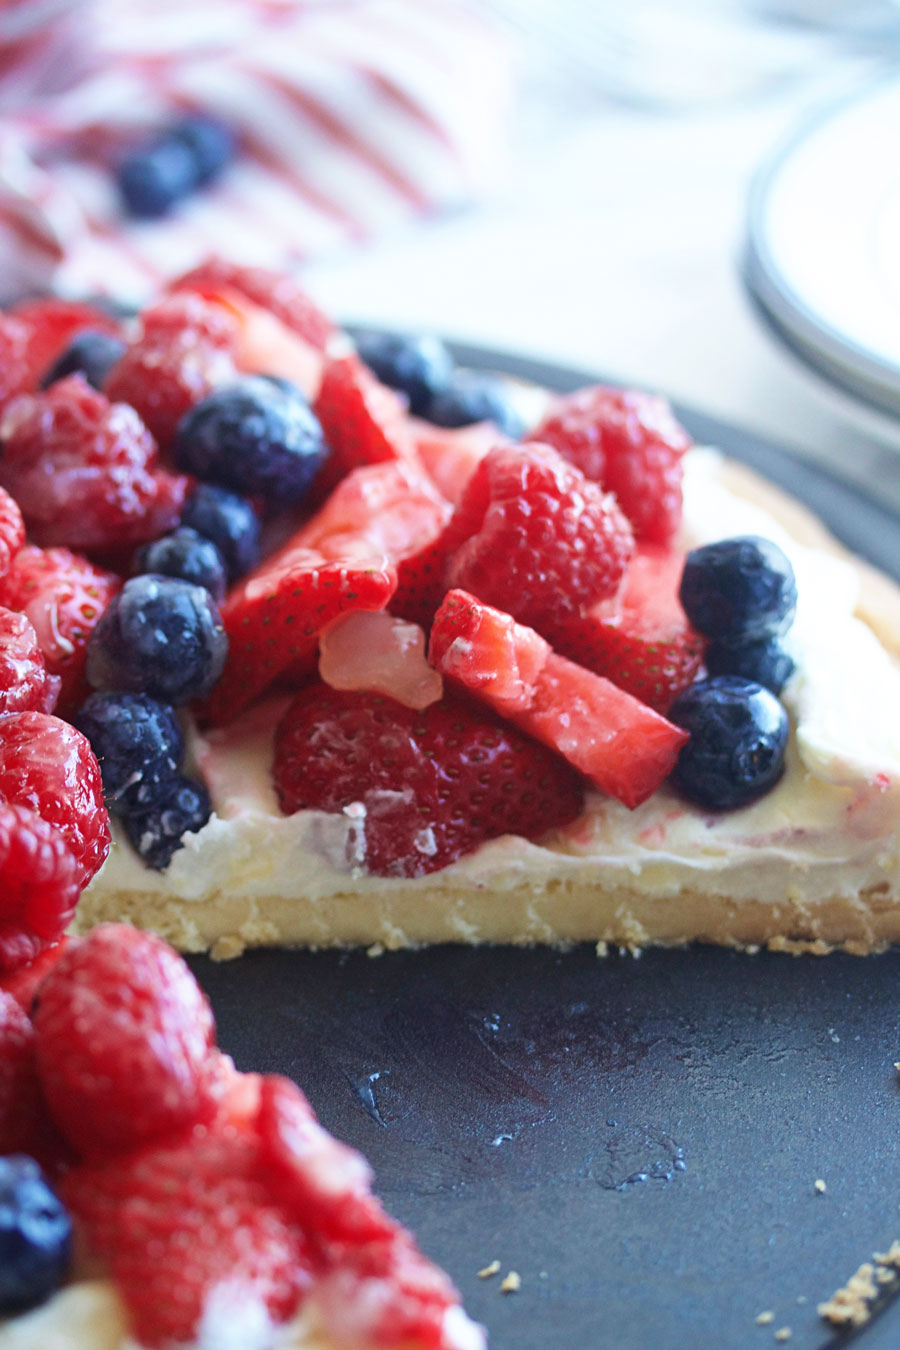 Vanilla cream fruit tart with a slice take out of it